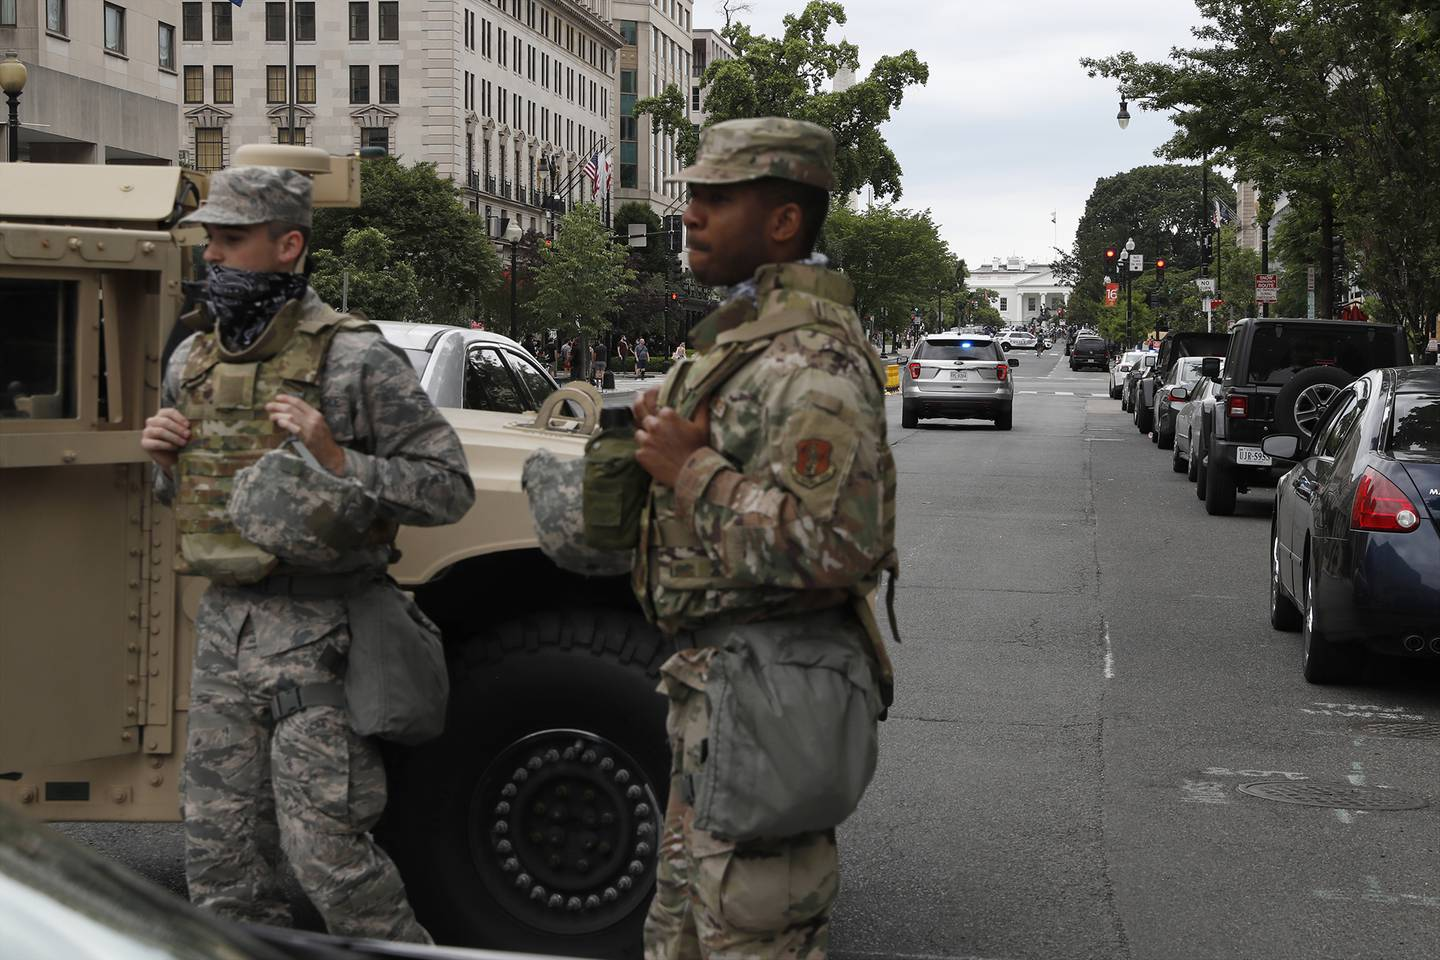 Members of the D.C. National Guard block an intersection on 16th Street as demonstrators gather to protest the death of George Floyd, Tuesday, June 2, 2020, near the White House in Washington.